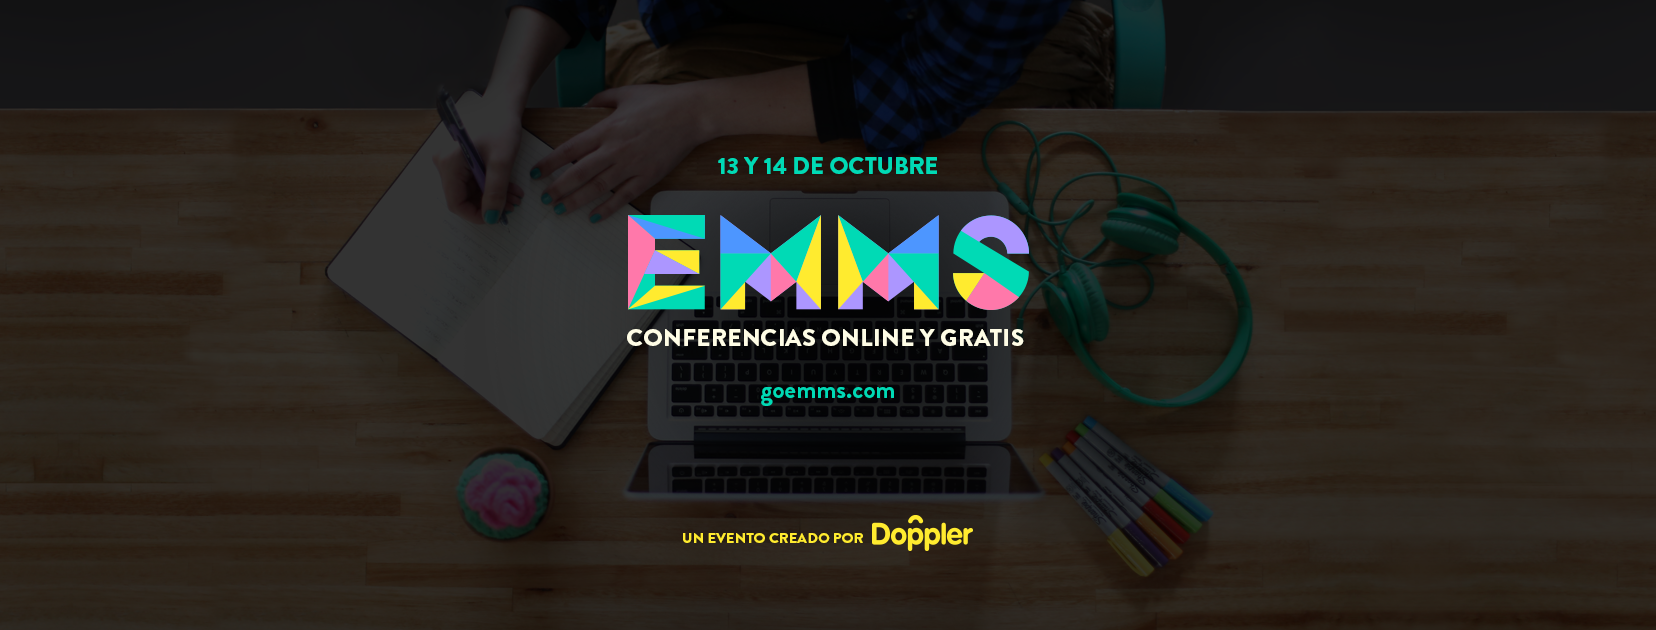 EMMS 2016: regresan las conferencias online y gratuitas de marketing